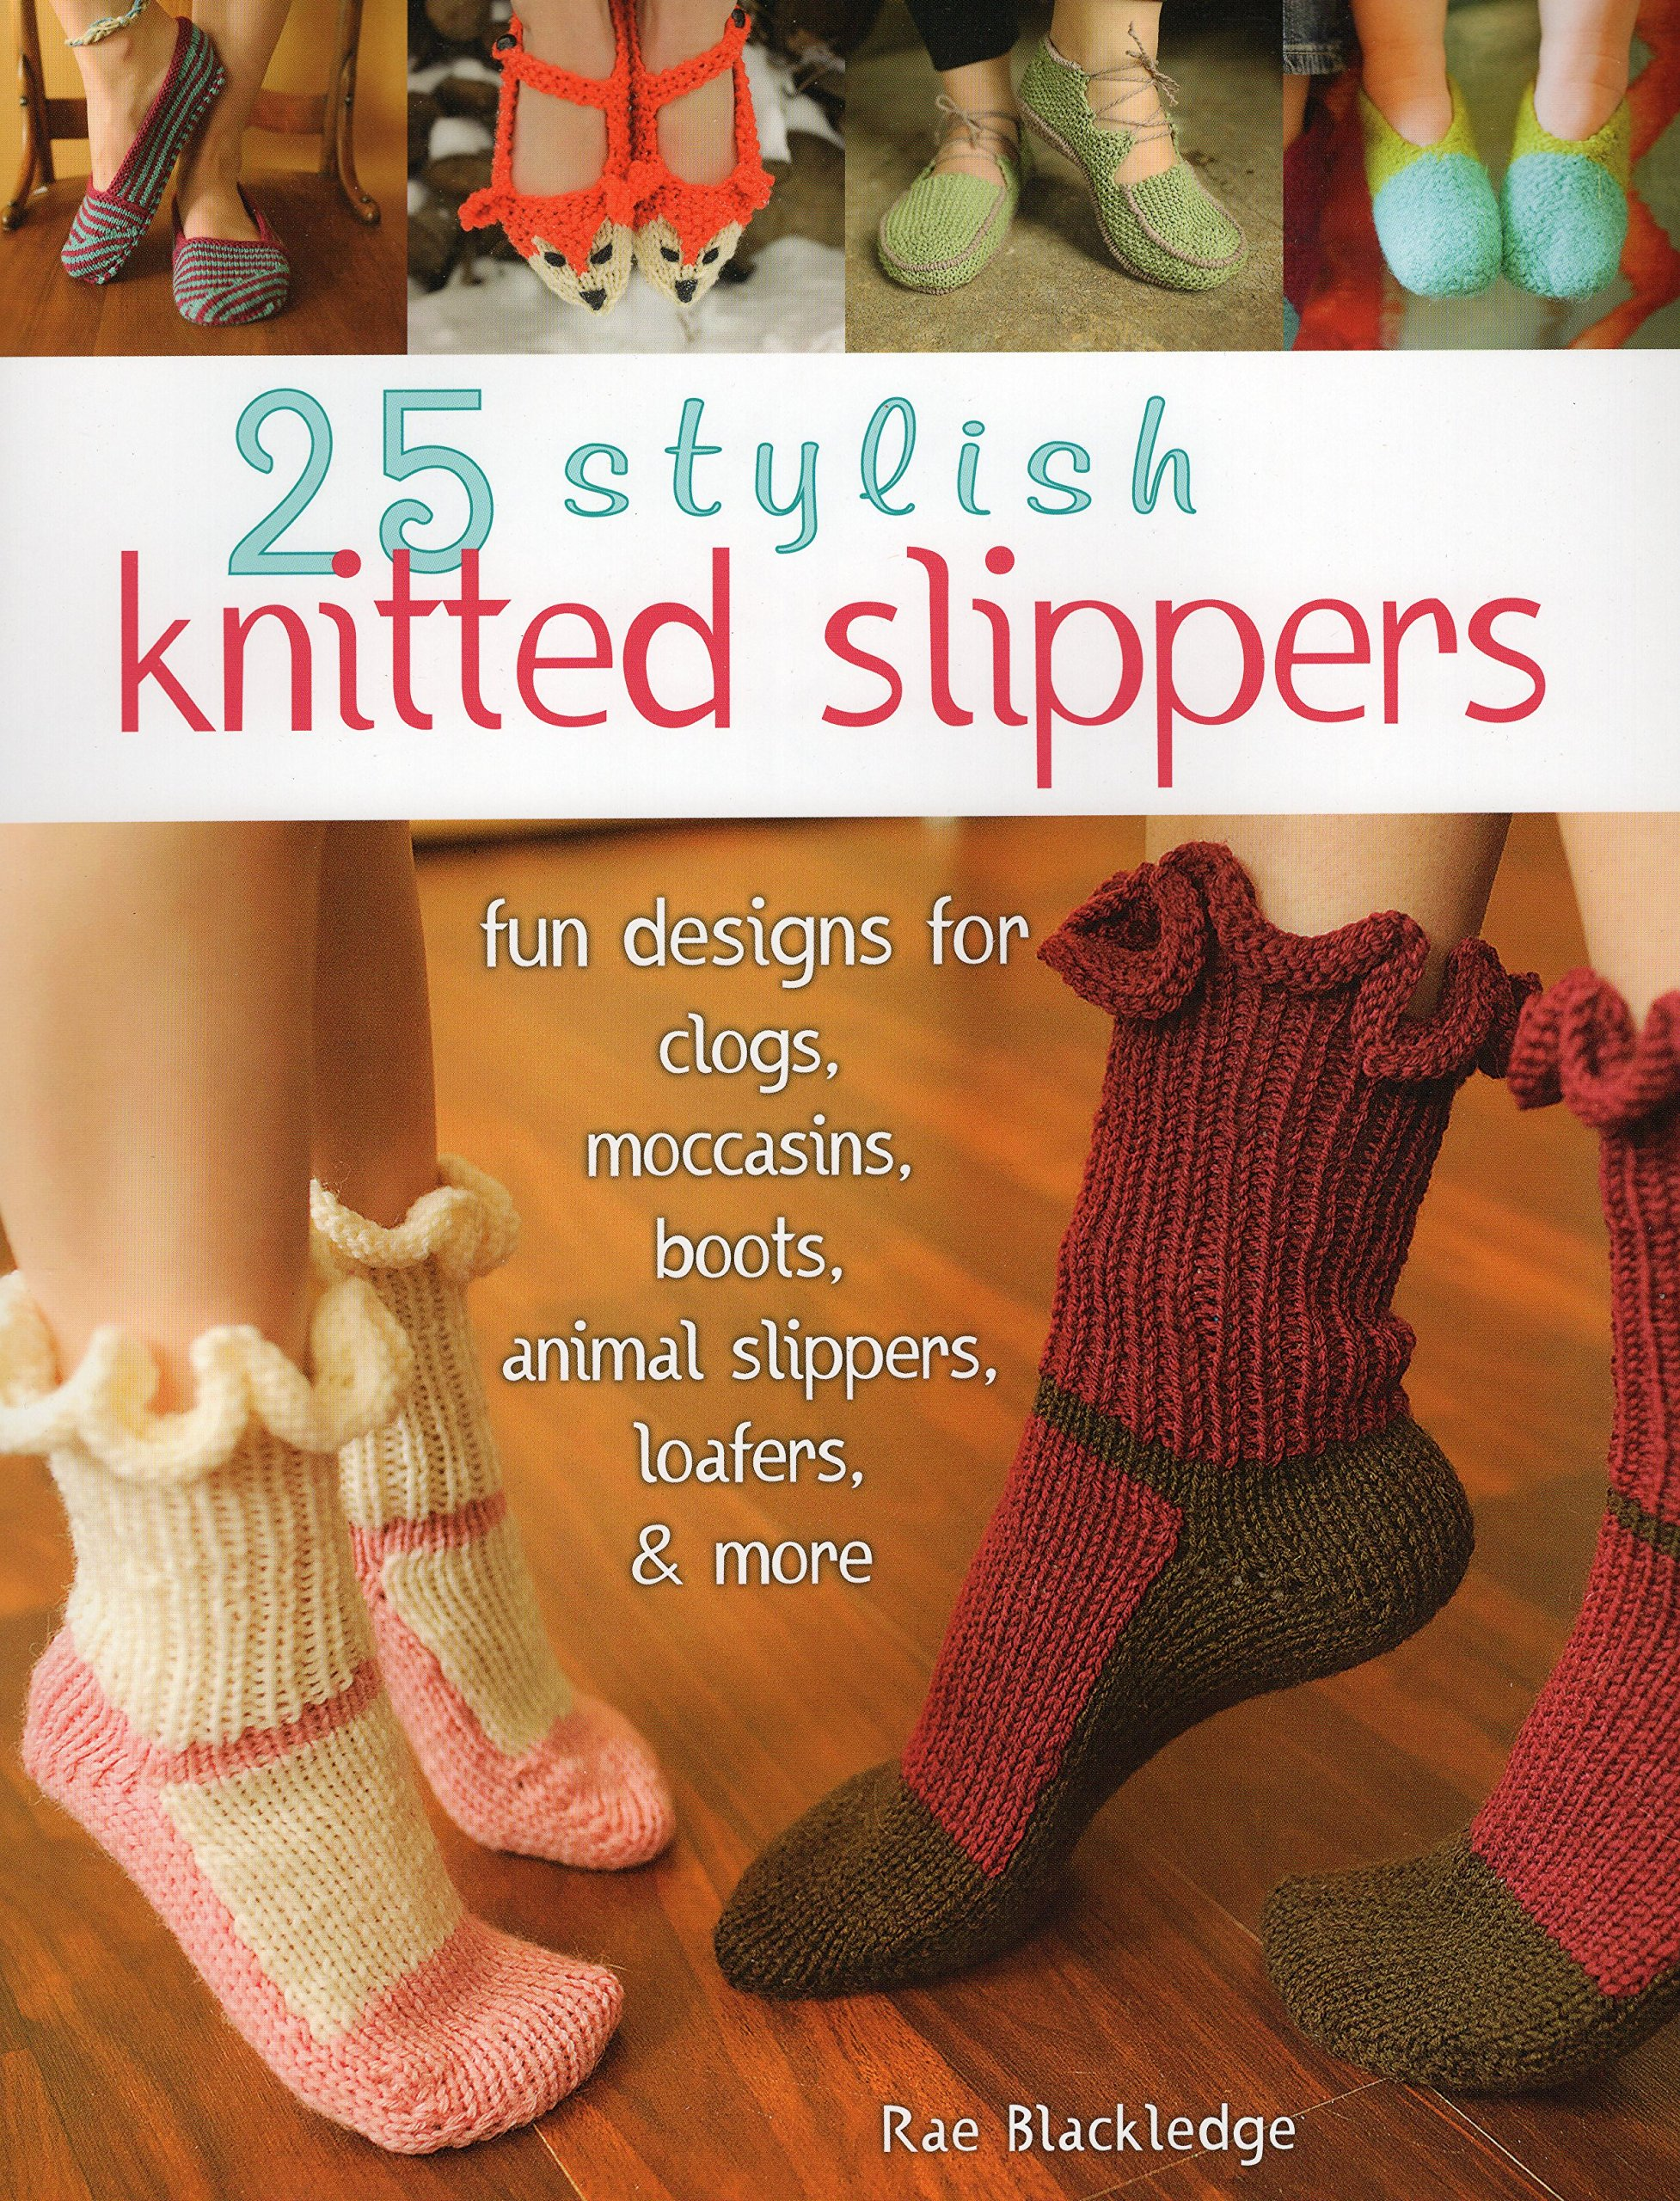 25 stylish knitted slippers fun designs for clogs moccasins 25 stylish knitted slippers fun designs for clogs moccasins boots animal slippers loafers more rae blackledge 0499992606213 amazon books bankloansurffo Choice Image